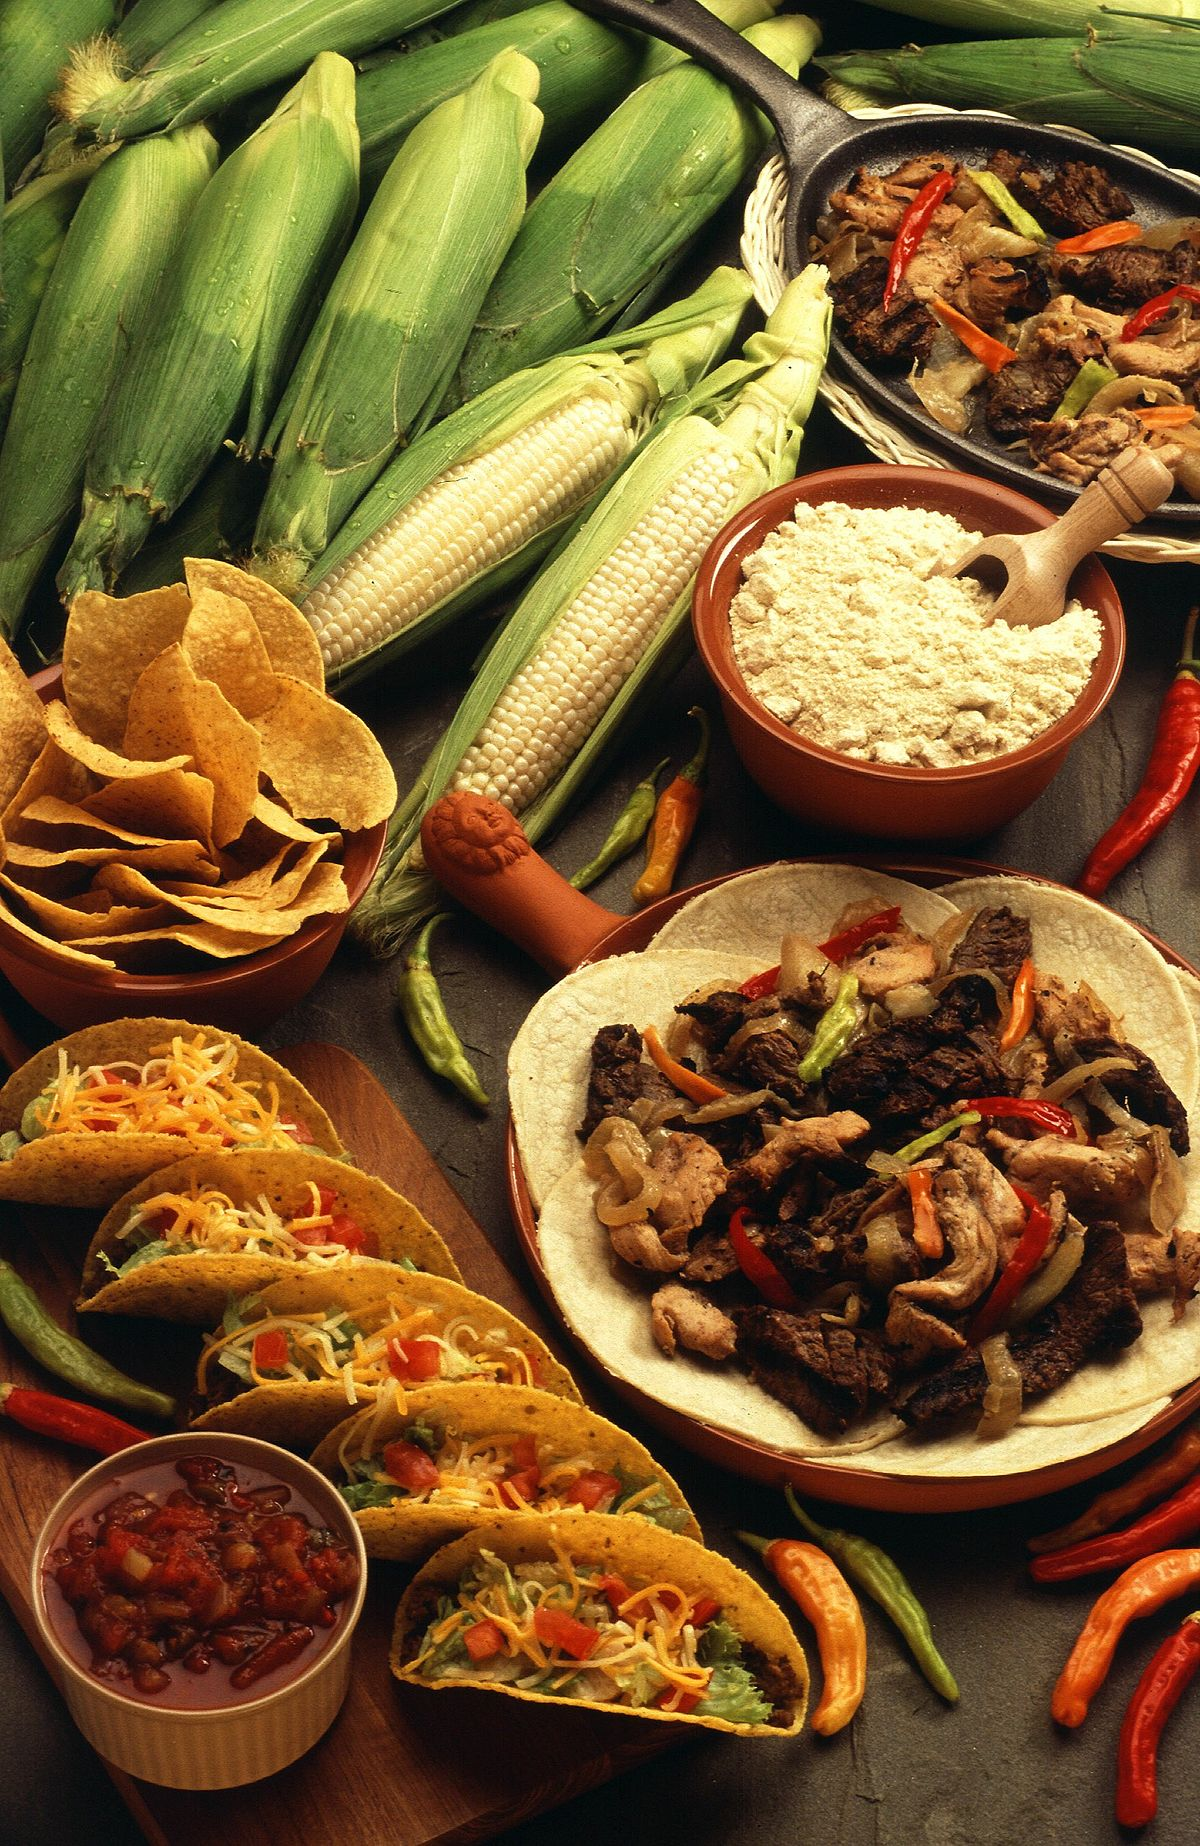 Tex mex wikipedia for American cuisine presentation